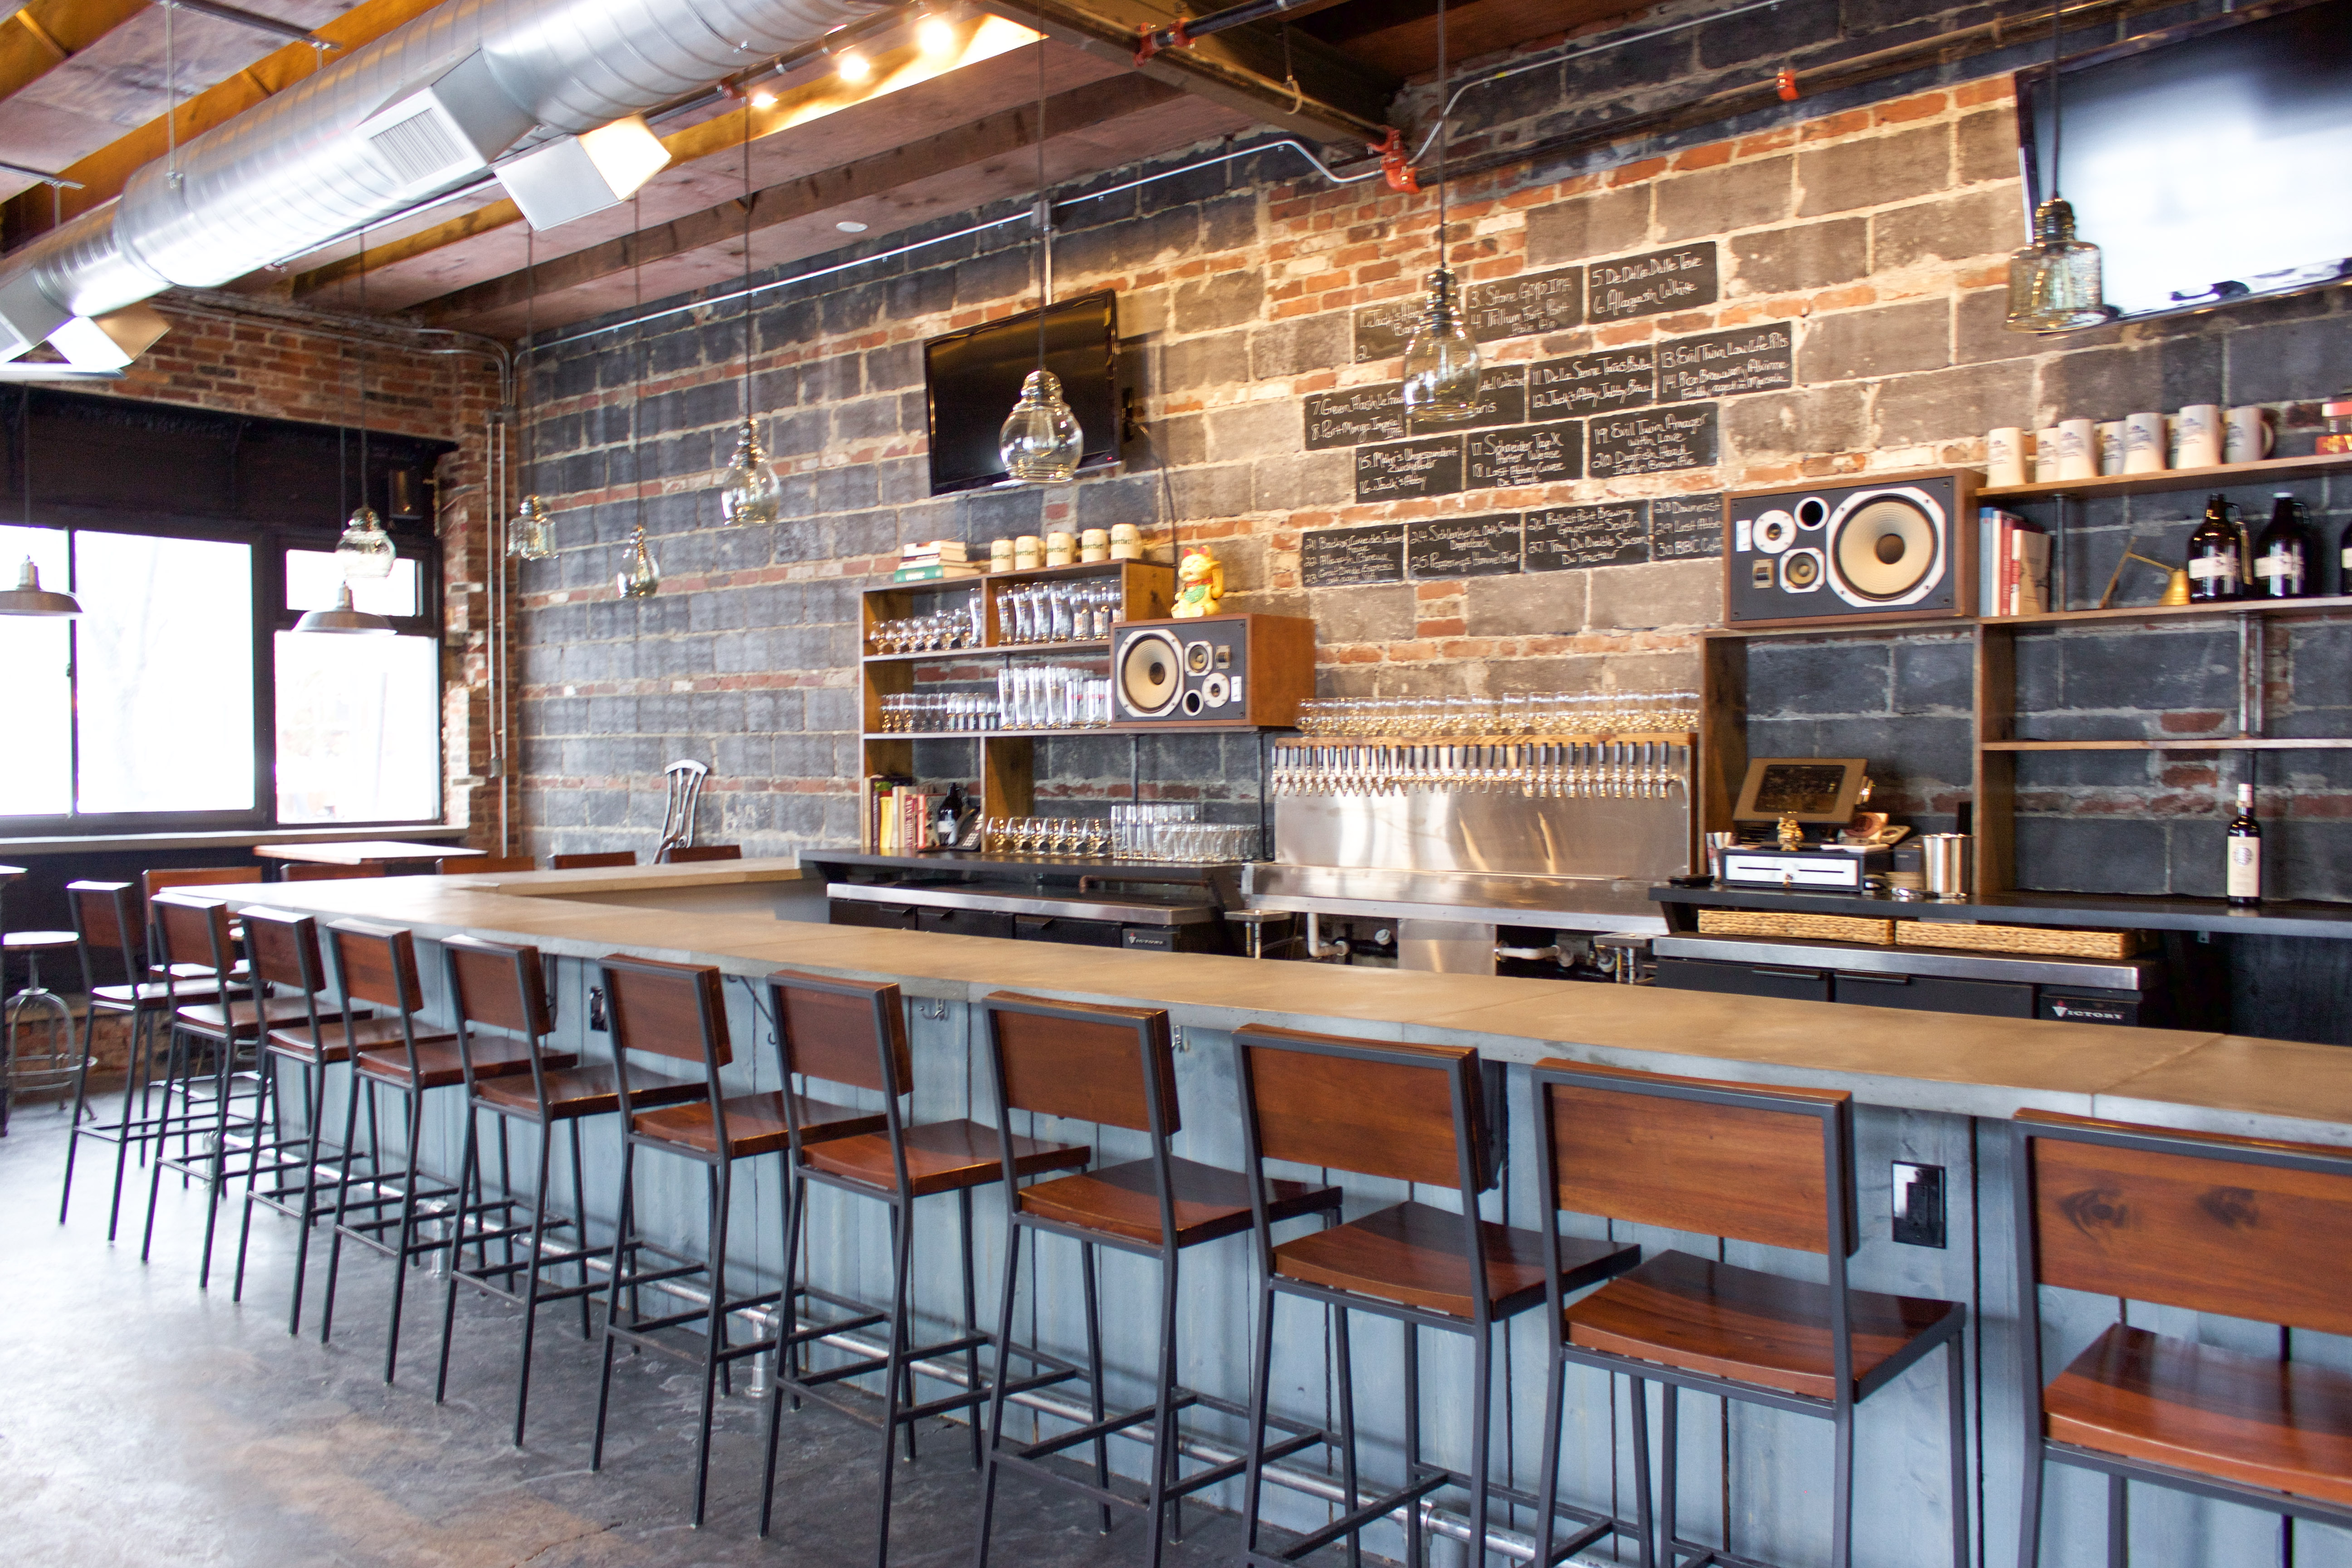 A casual bar at a restaurant with gray bricks along the wall, a polished cement floor, and wooden bar chairs.